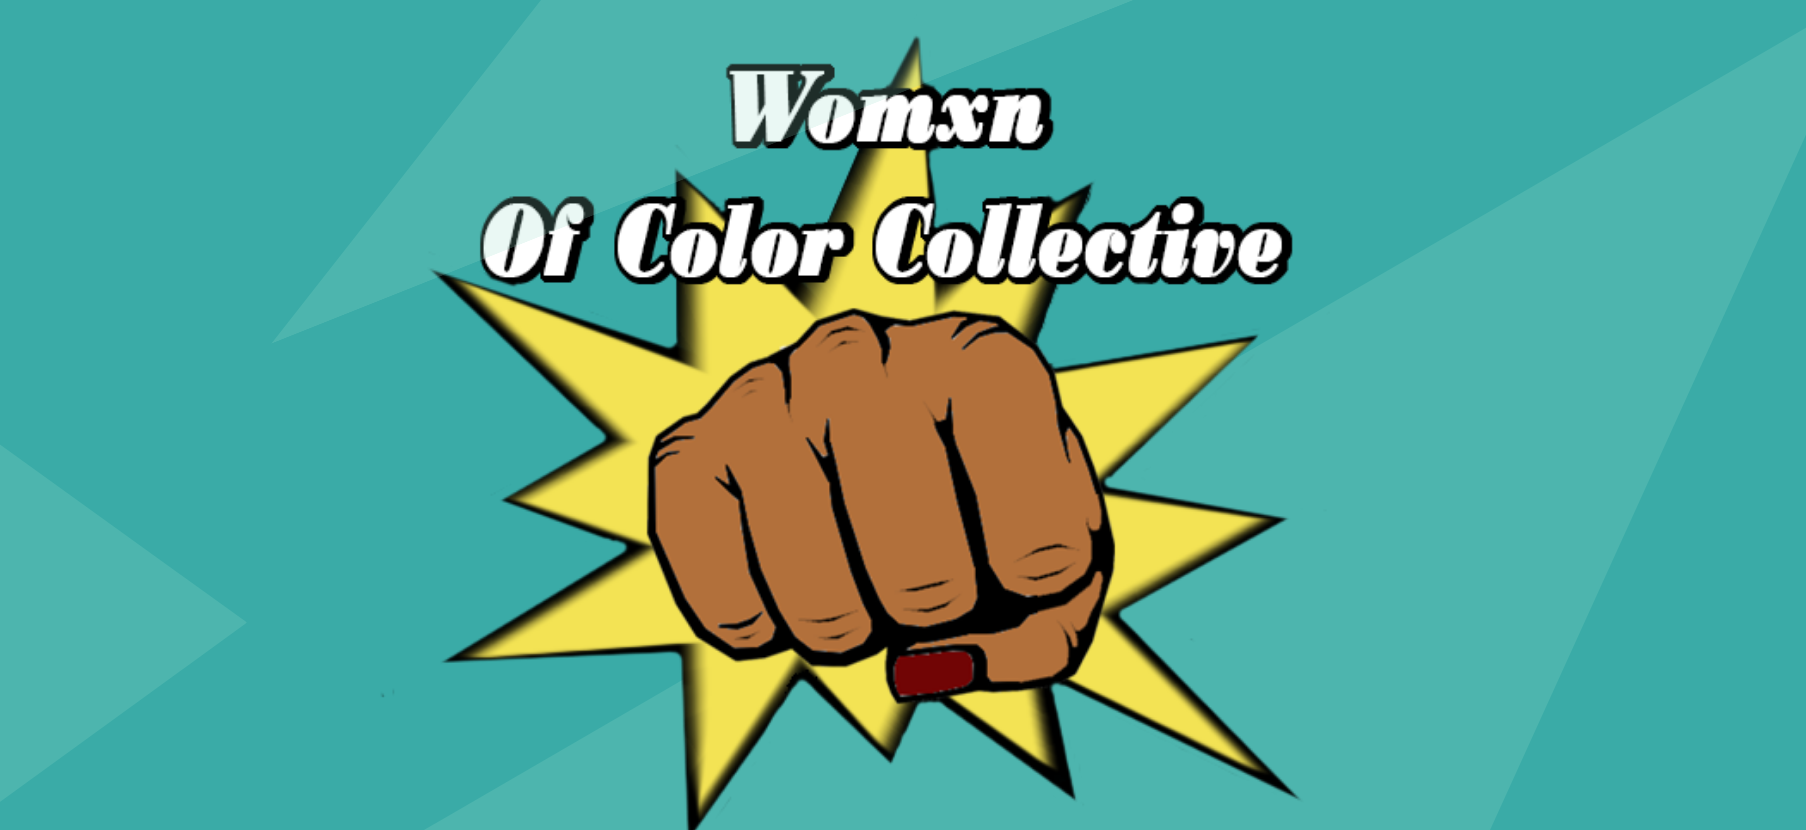 Illustration of a clenched fist with nails painted red